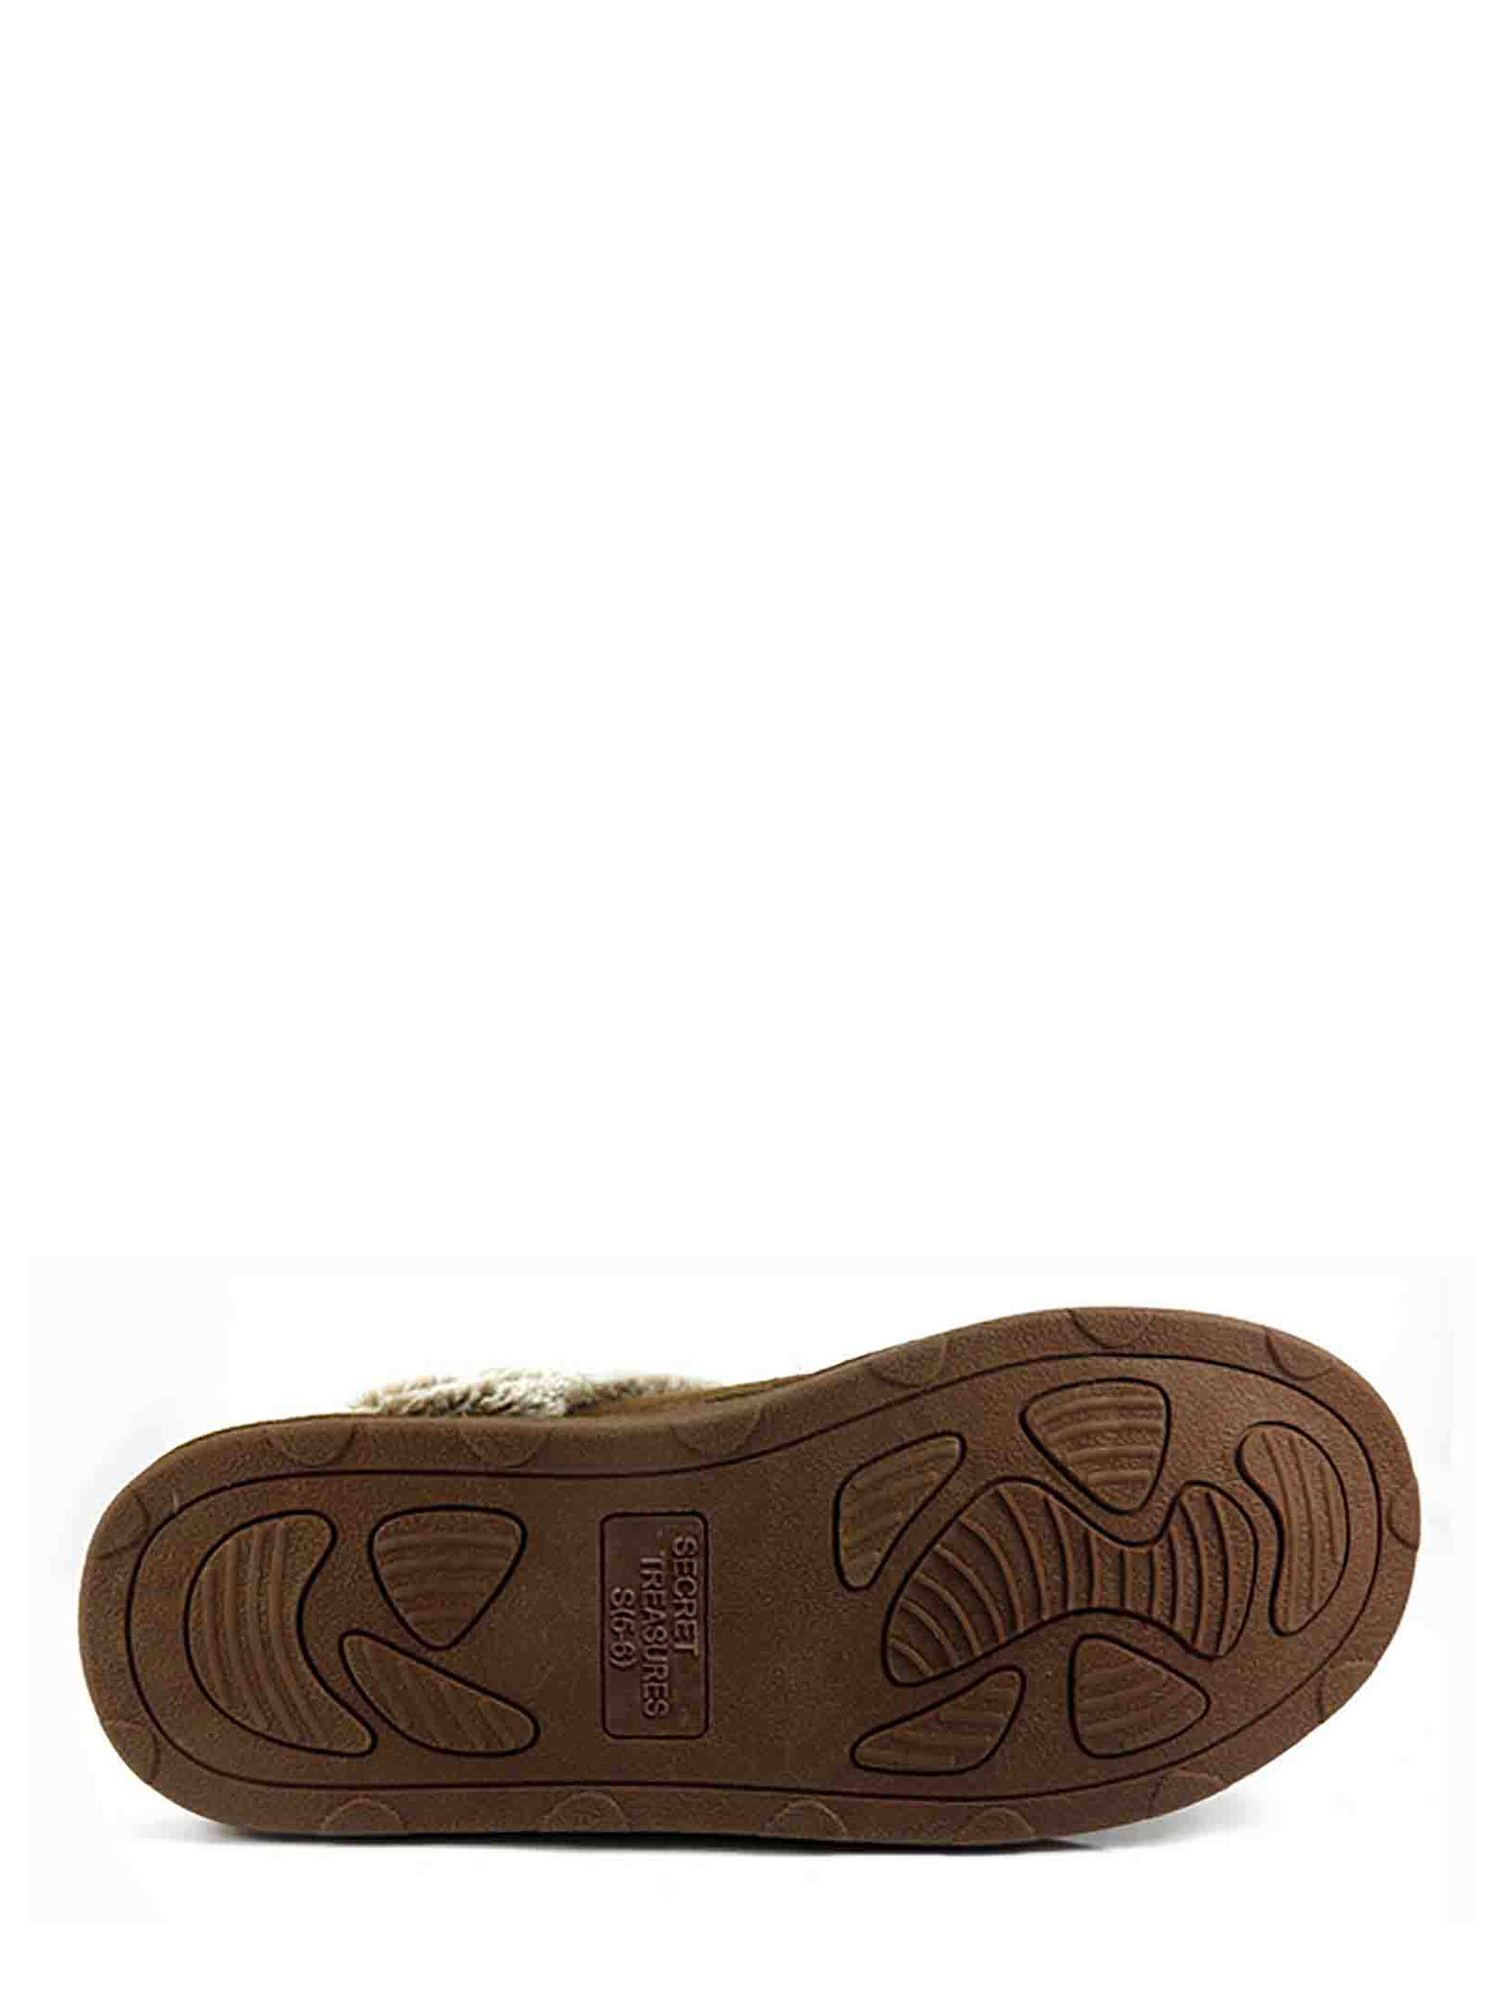 8aa8d6c99d8 SECRET TREASURES - Secret Treasures Women s Clog Slipper - Walmart.com